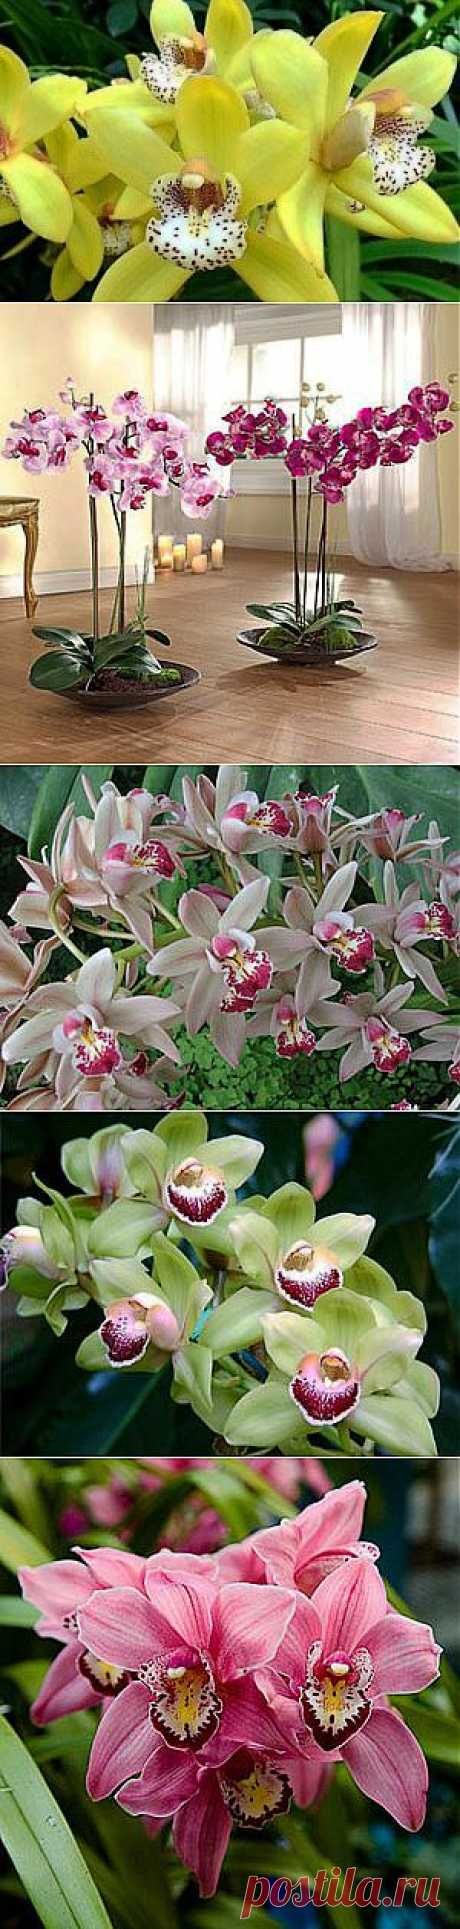 Orchid: leaving in house conditions - Houseplants, leaving, the encyclopedia of plants, house flowers, a photo, names